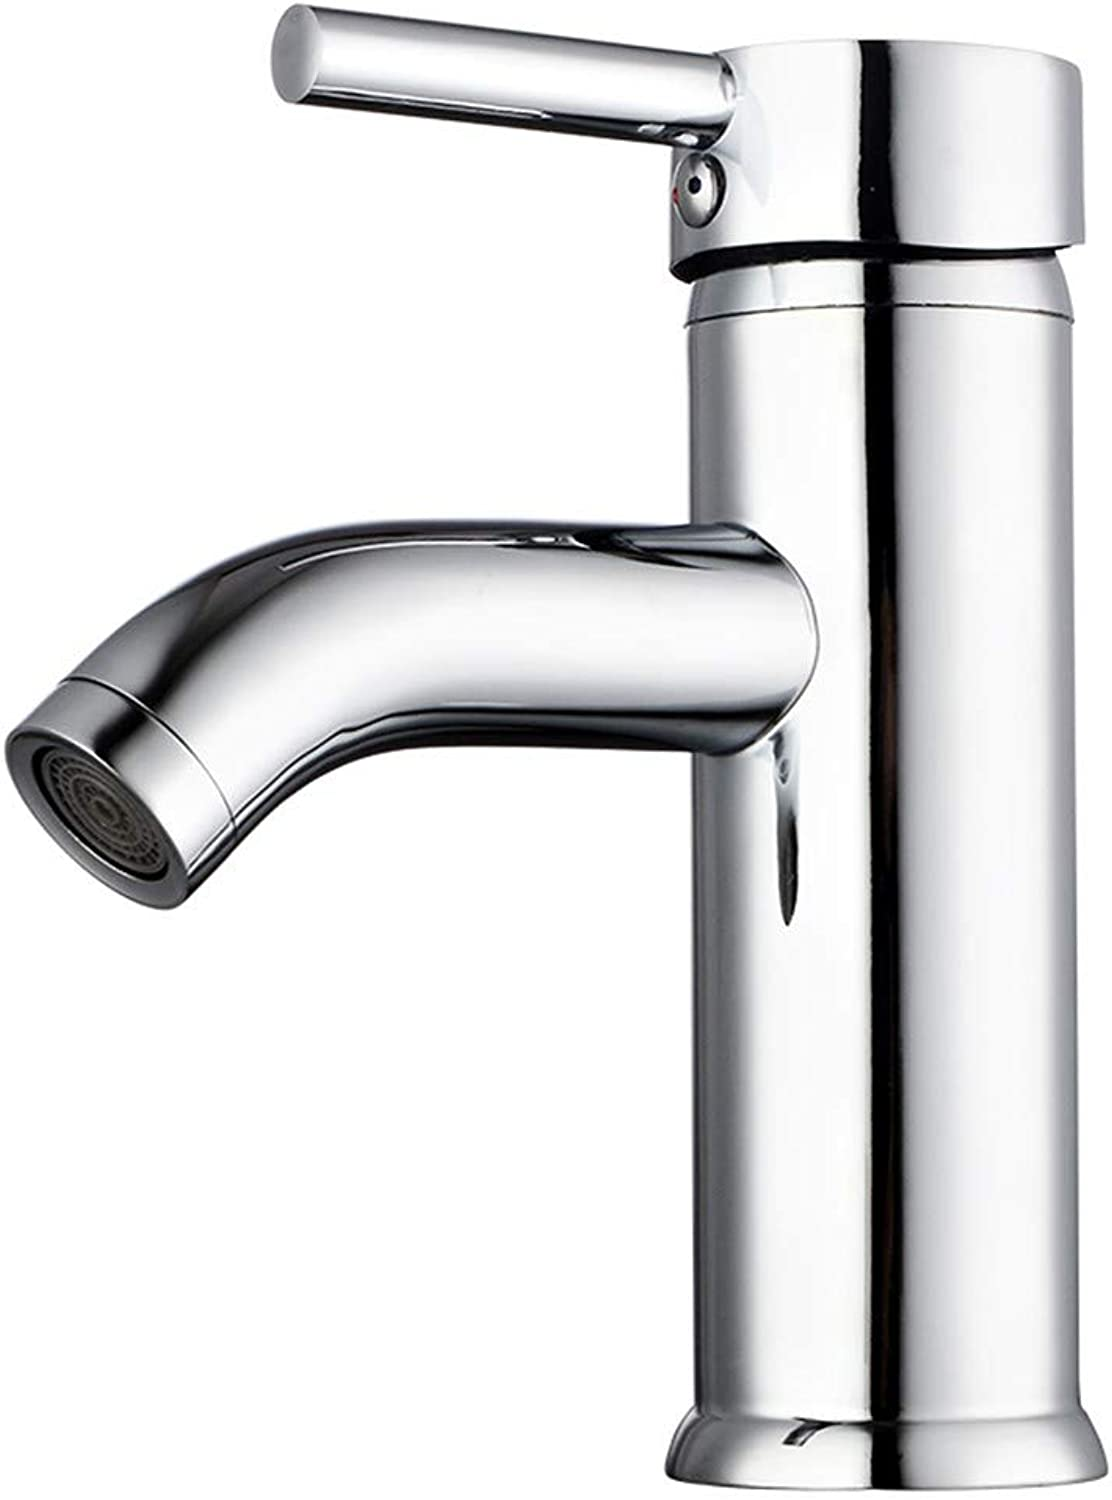 Faucet Copper Main Body hot and Cold Basin Faucet Single Hole washbasin Faucet